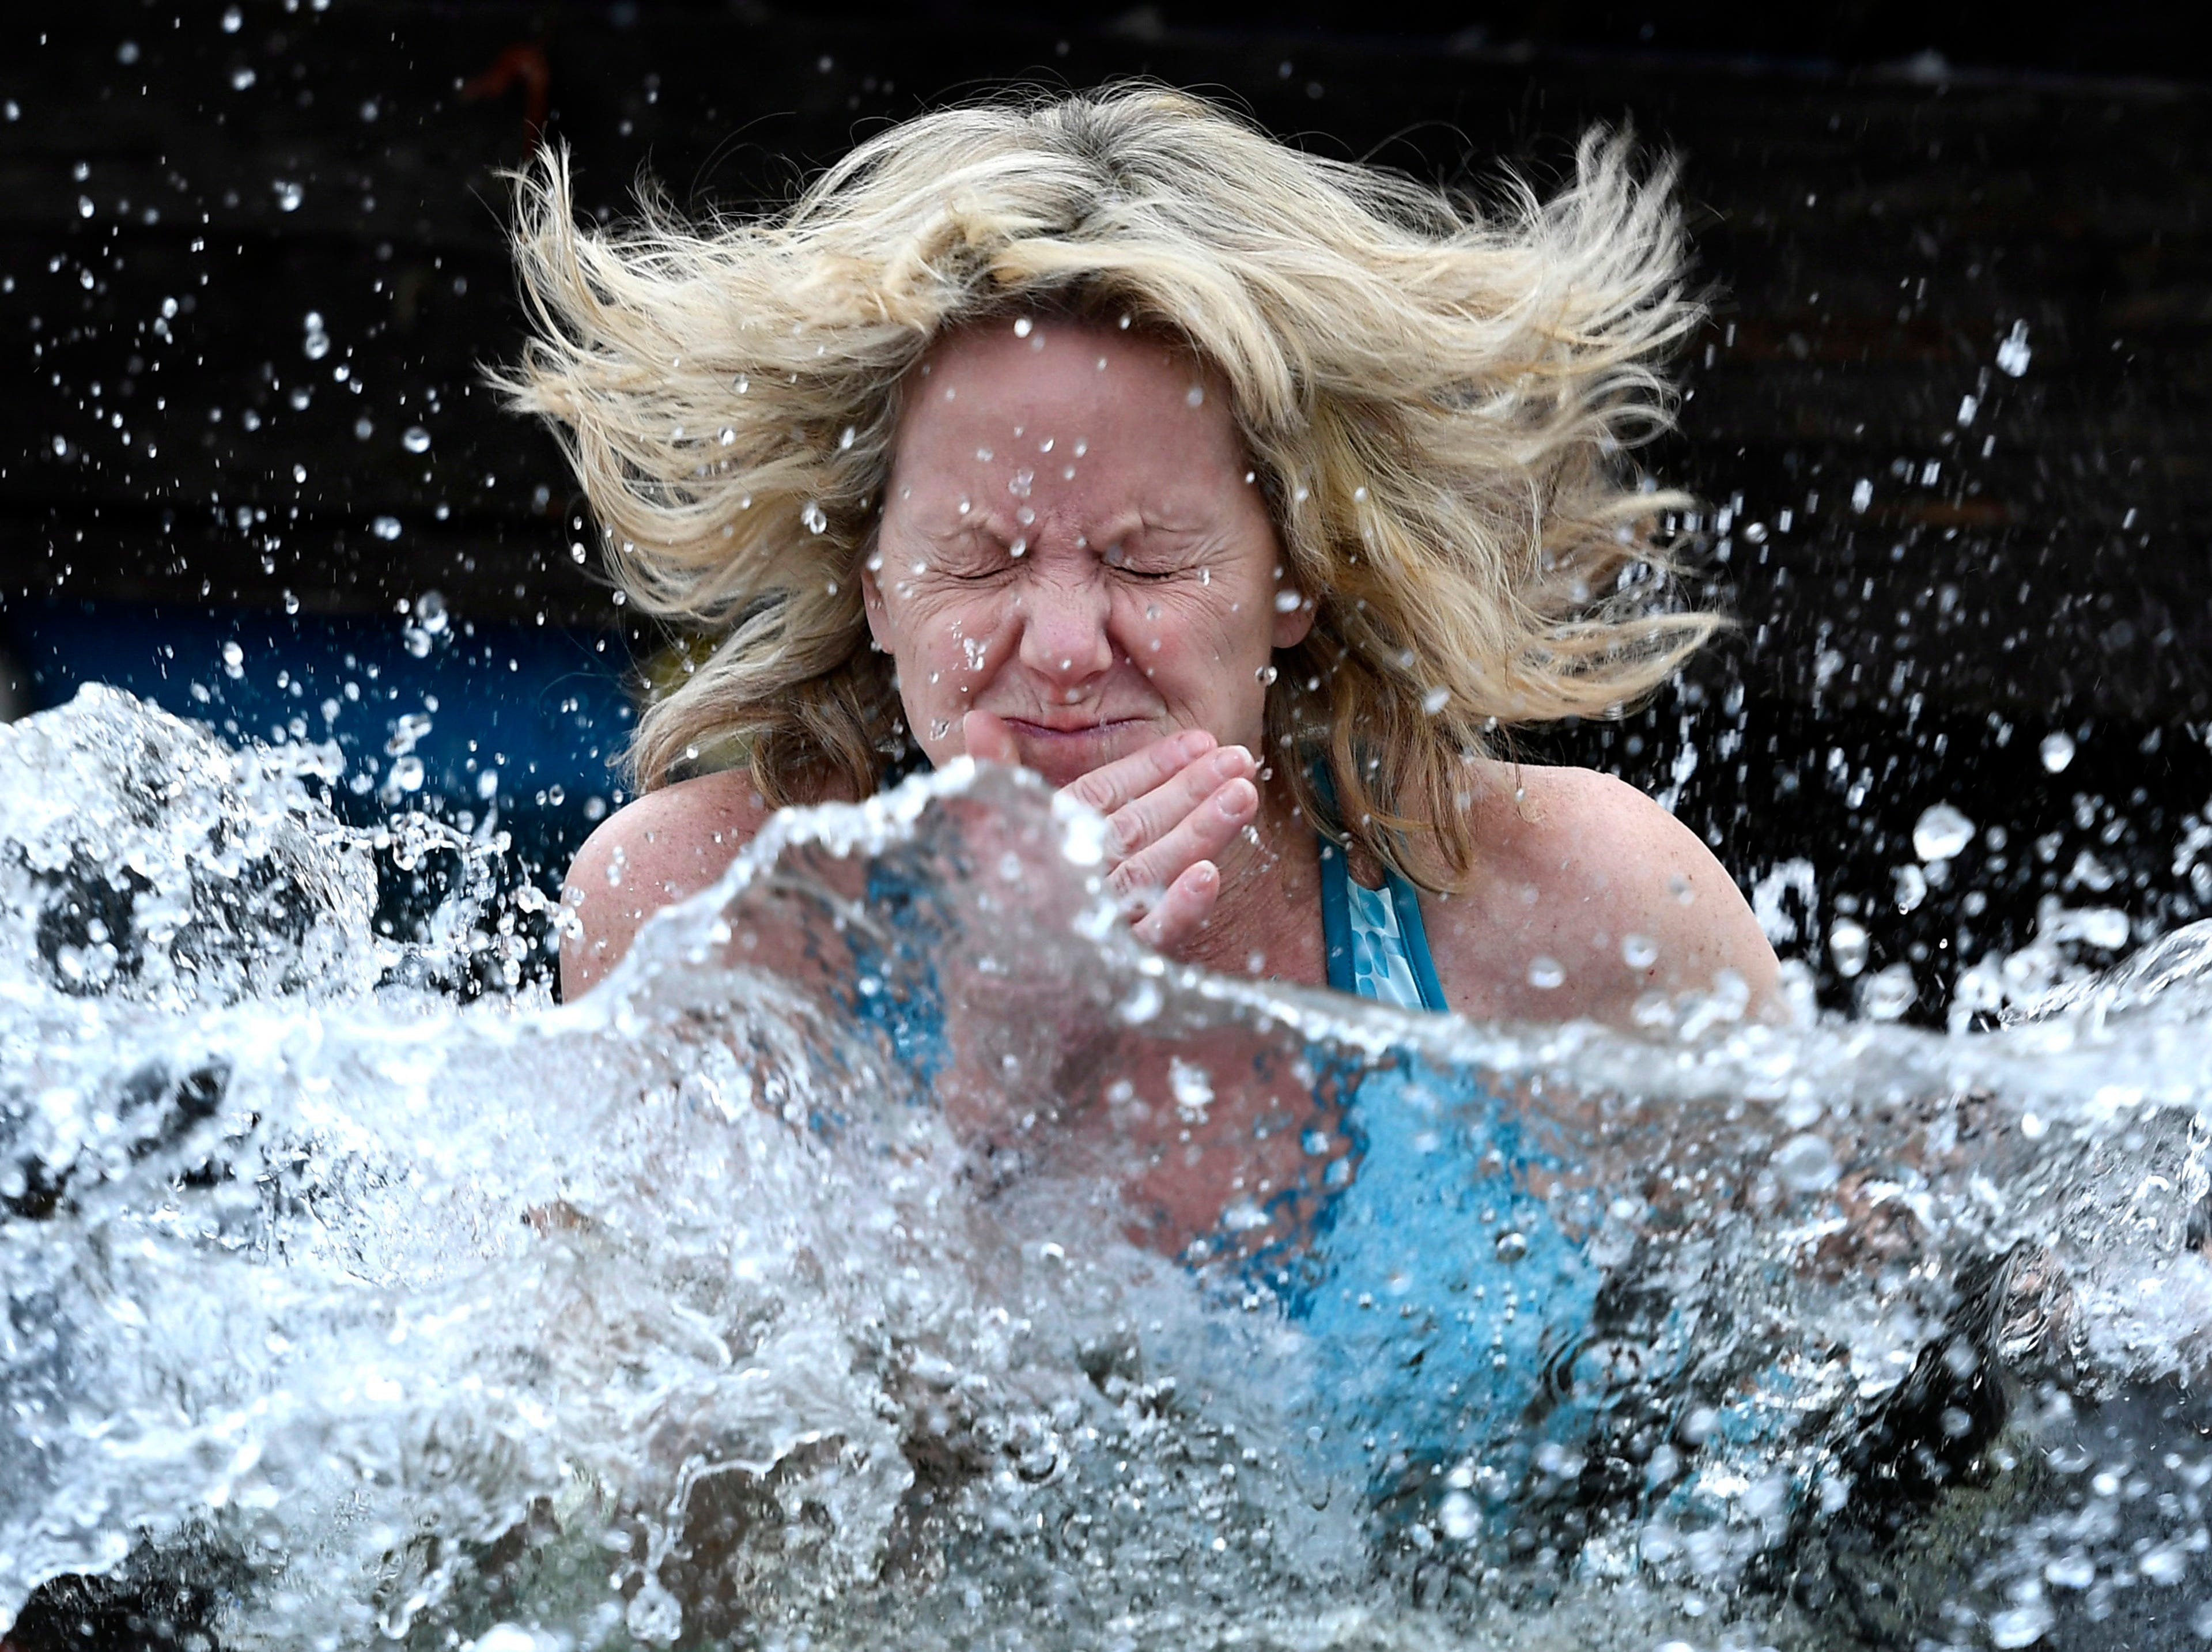 A reveler reacts as she jumps into the water during the Perth Polar Bear Plunge in Perth, Ontario, on New Year's Day, Tuesday, Jan. 1, 2019.